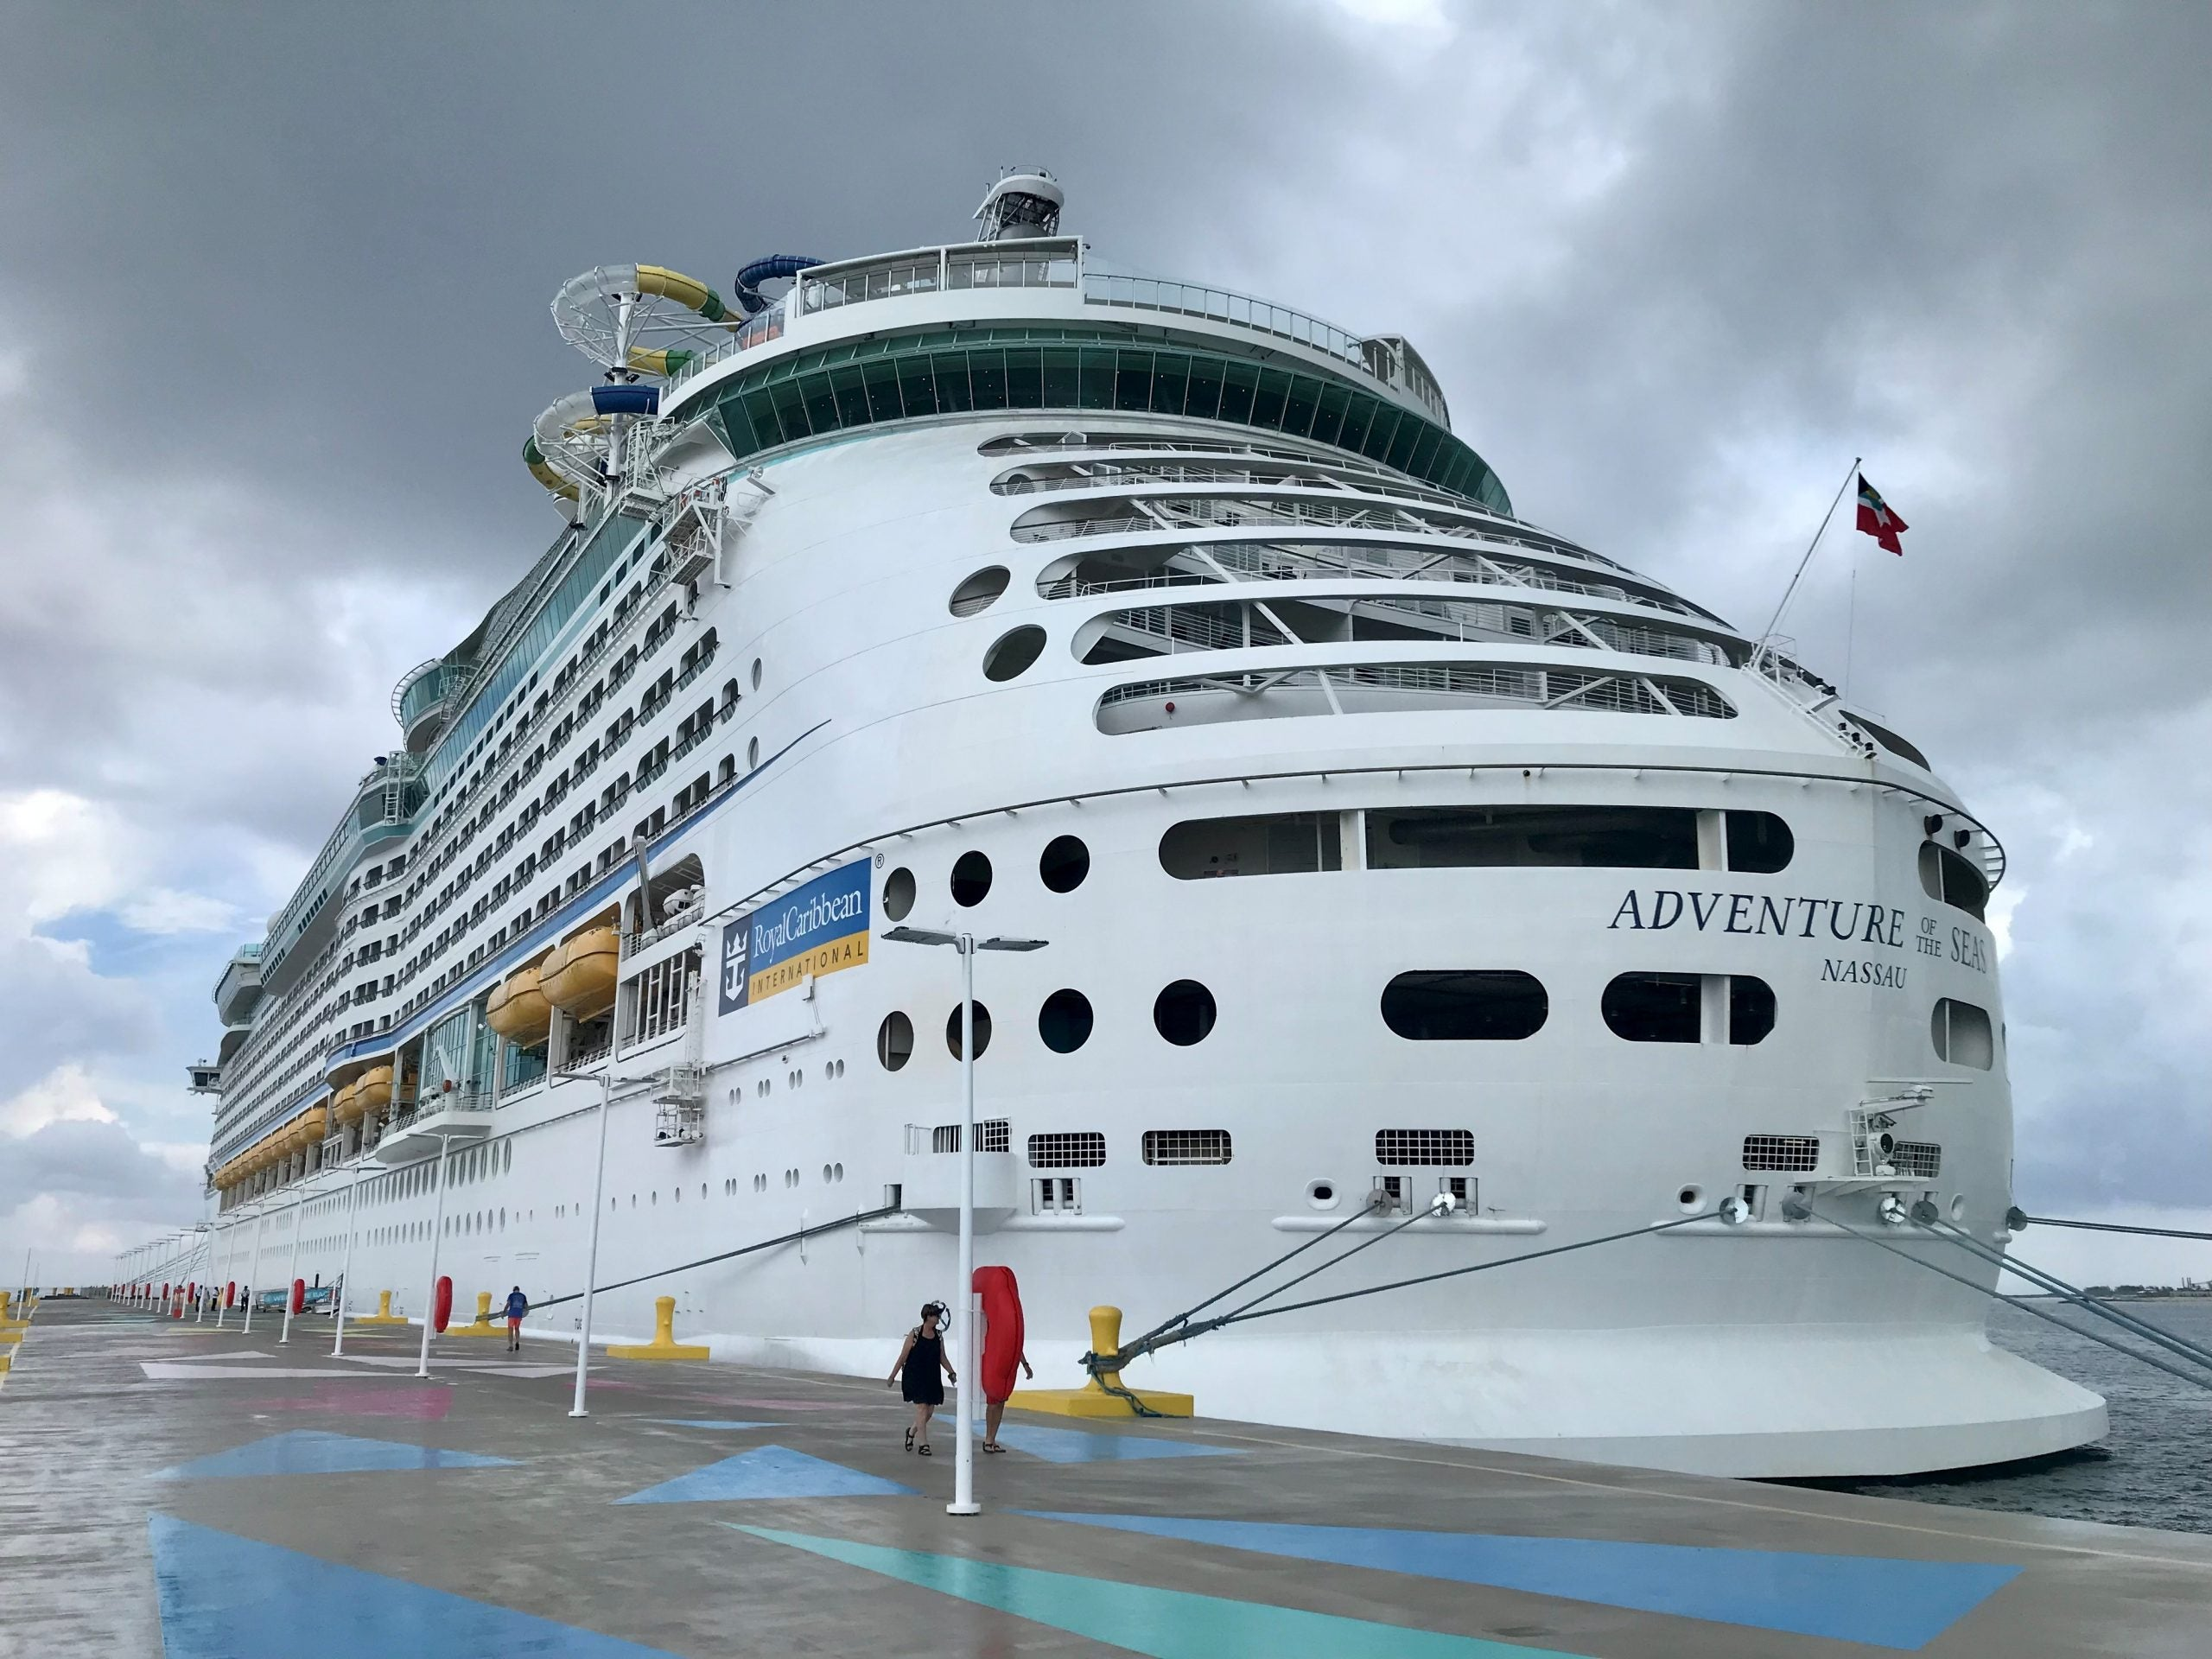 6 changes we've seen on the first Royal Caribbean cruise in North America in 15 months - The Points Guy